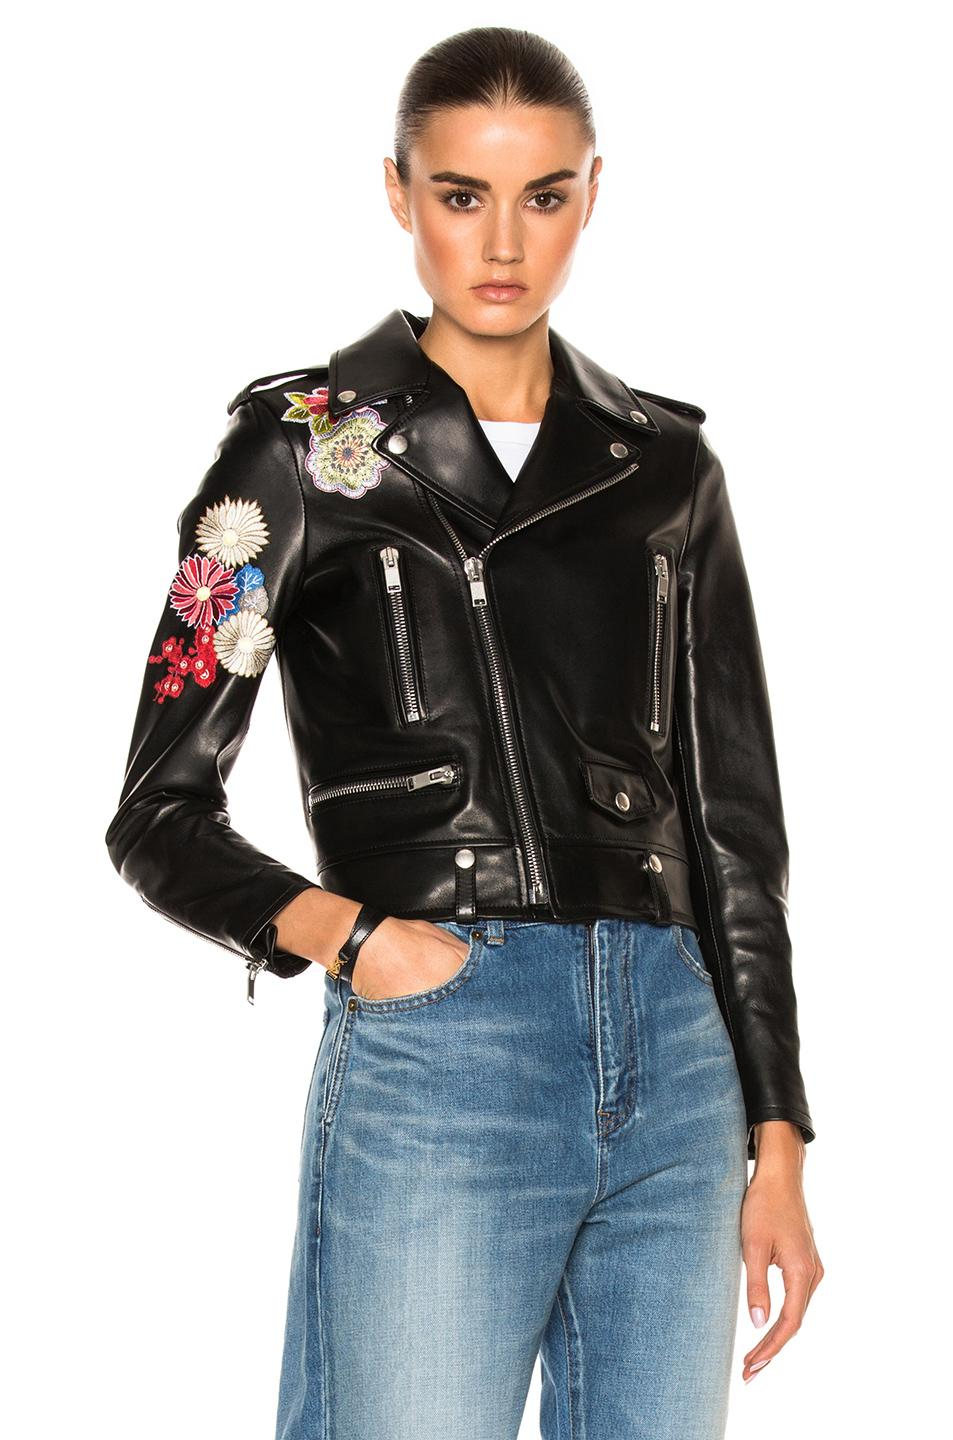 Saint Laurent Embellished Embroidered Leather Motorcycle Jacket In Black | Lyst